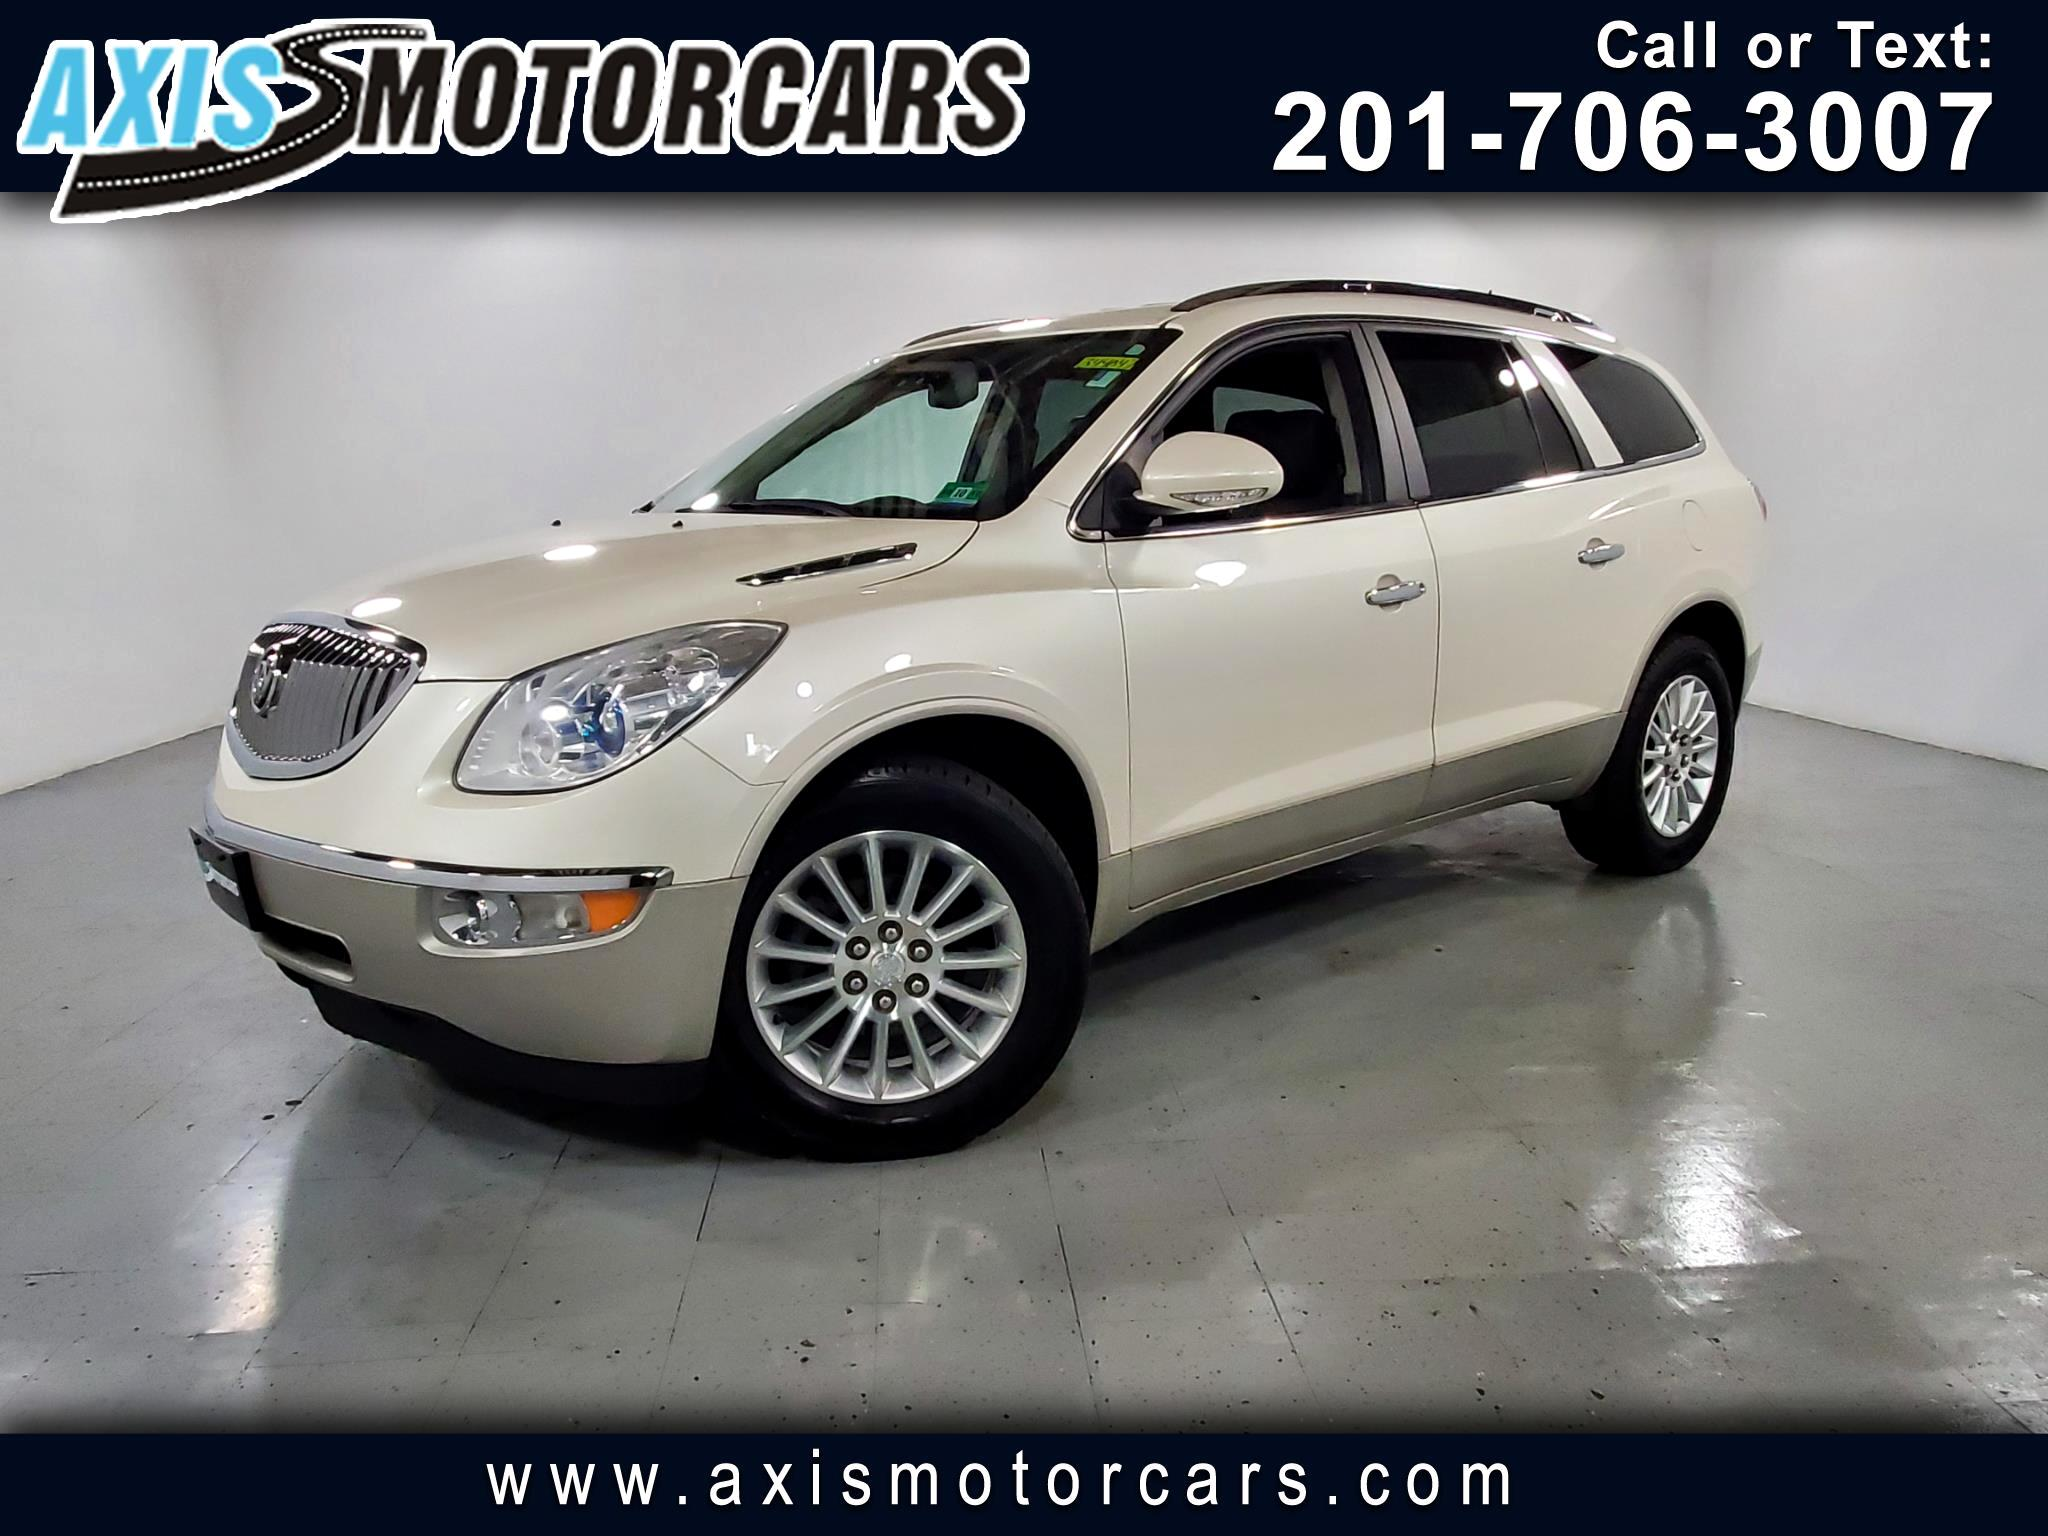 2012 Buick Enclave w/3rd Seat Row Leather